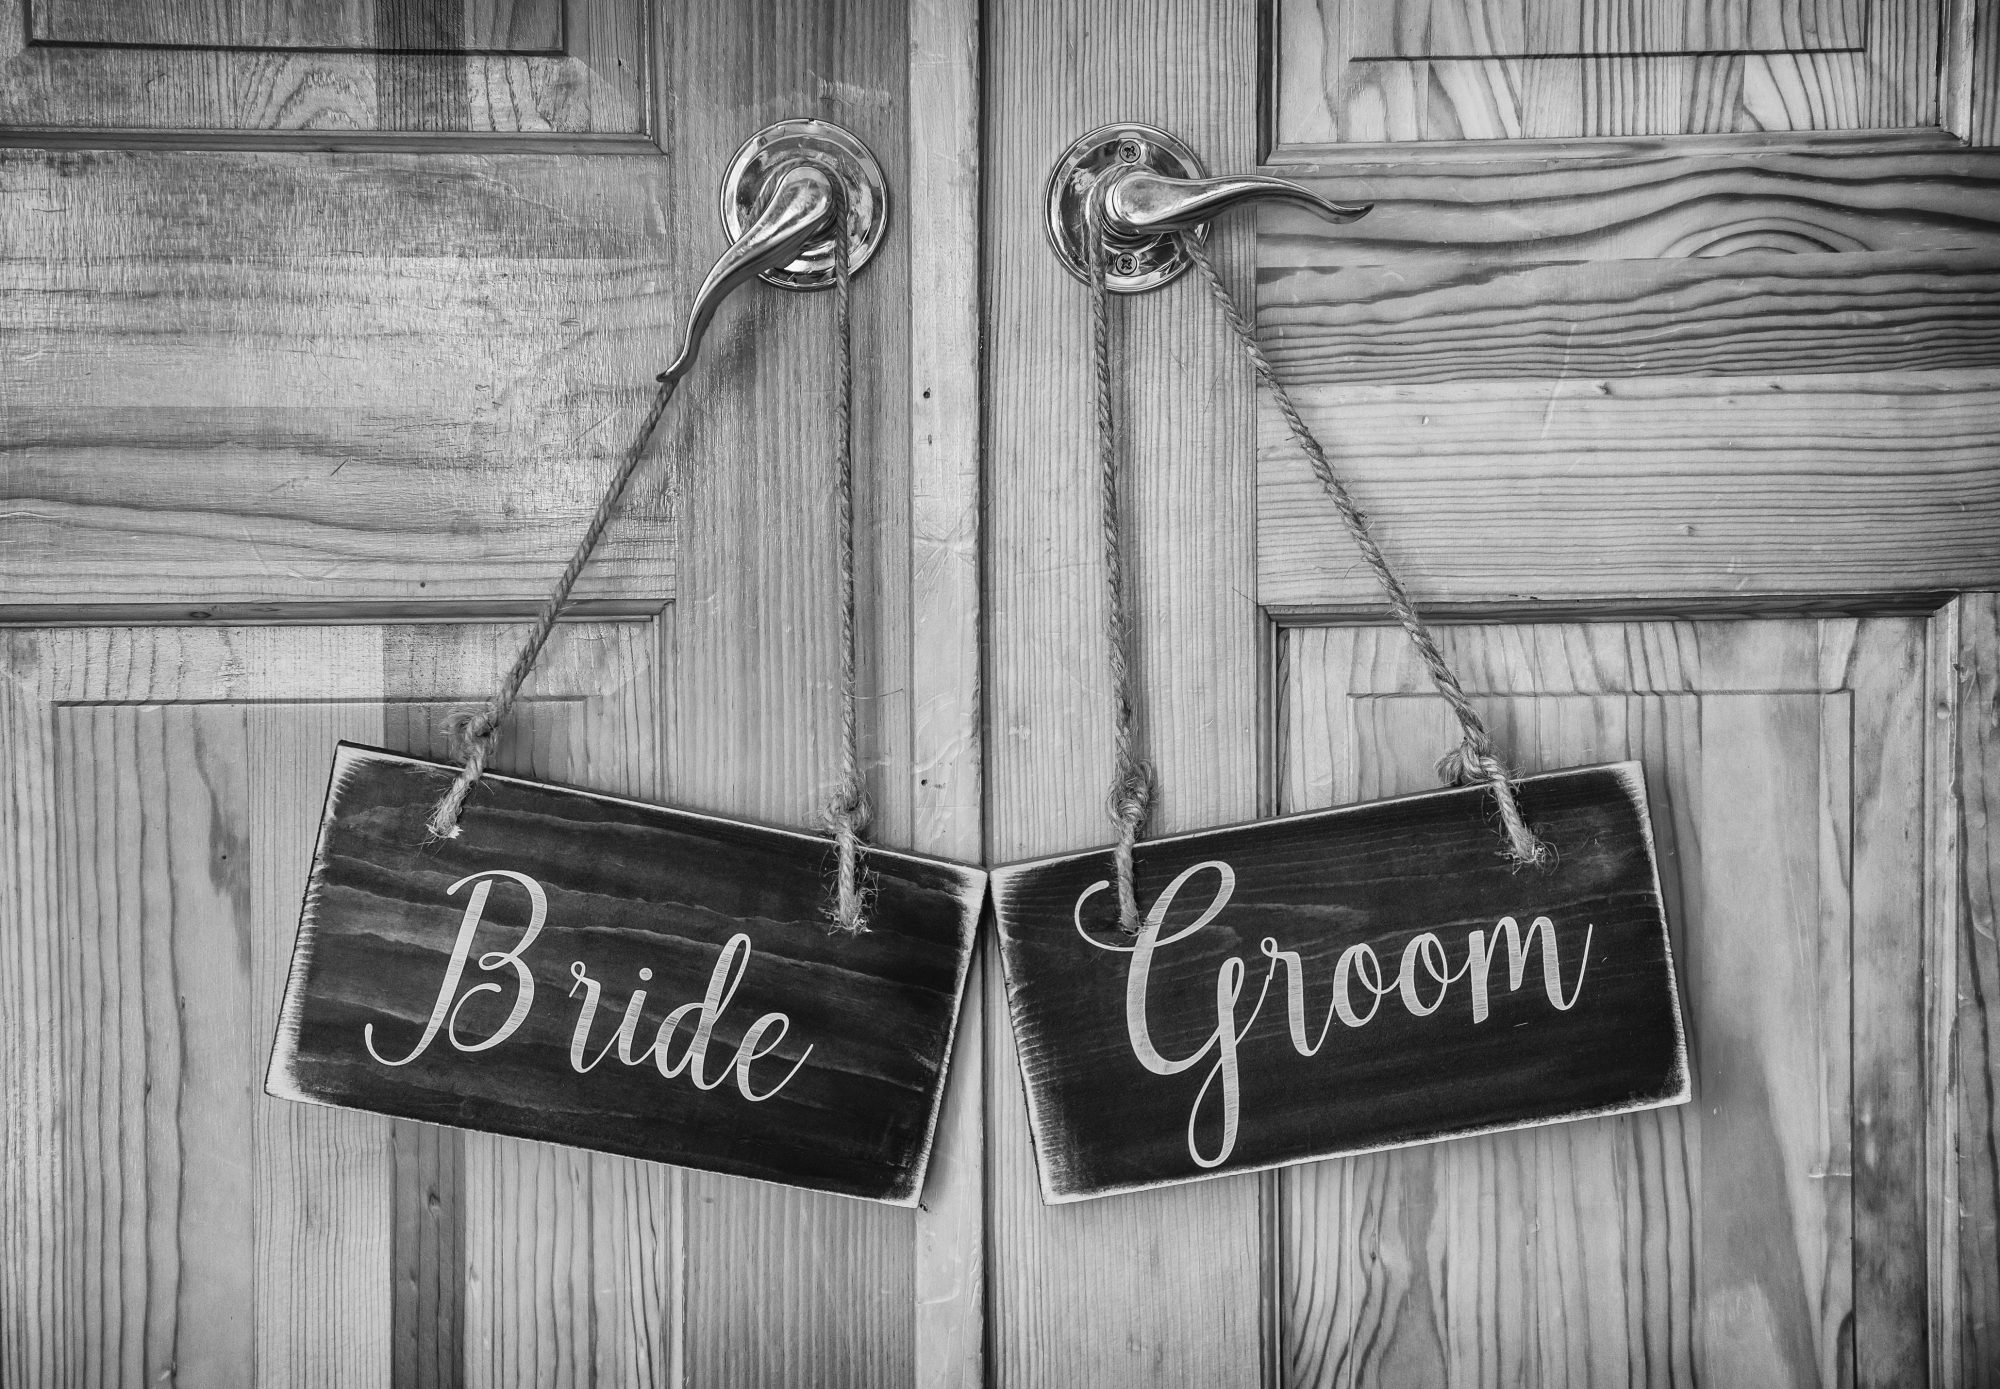 Bride and groom wooden signs for chairs at a wedding.